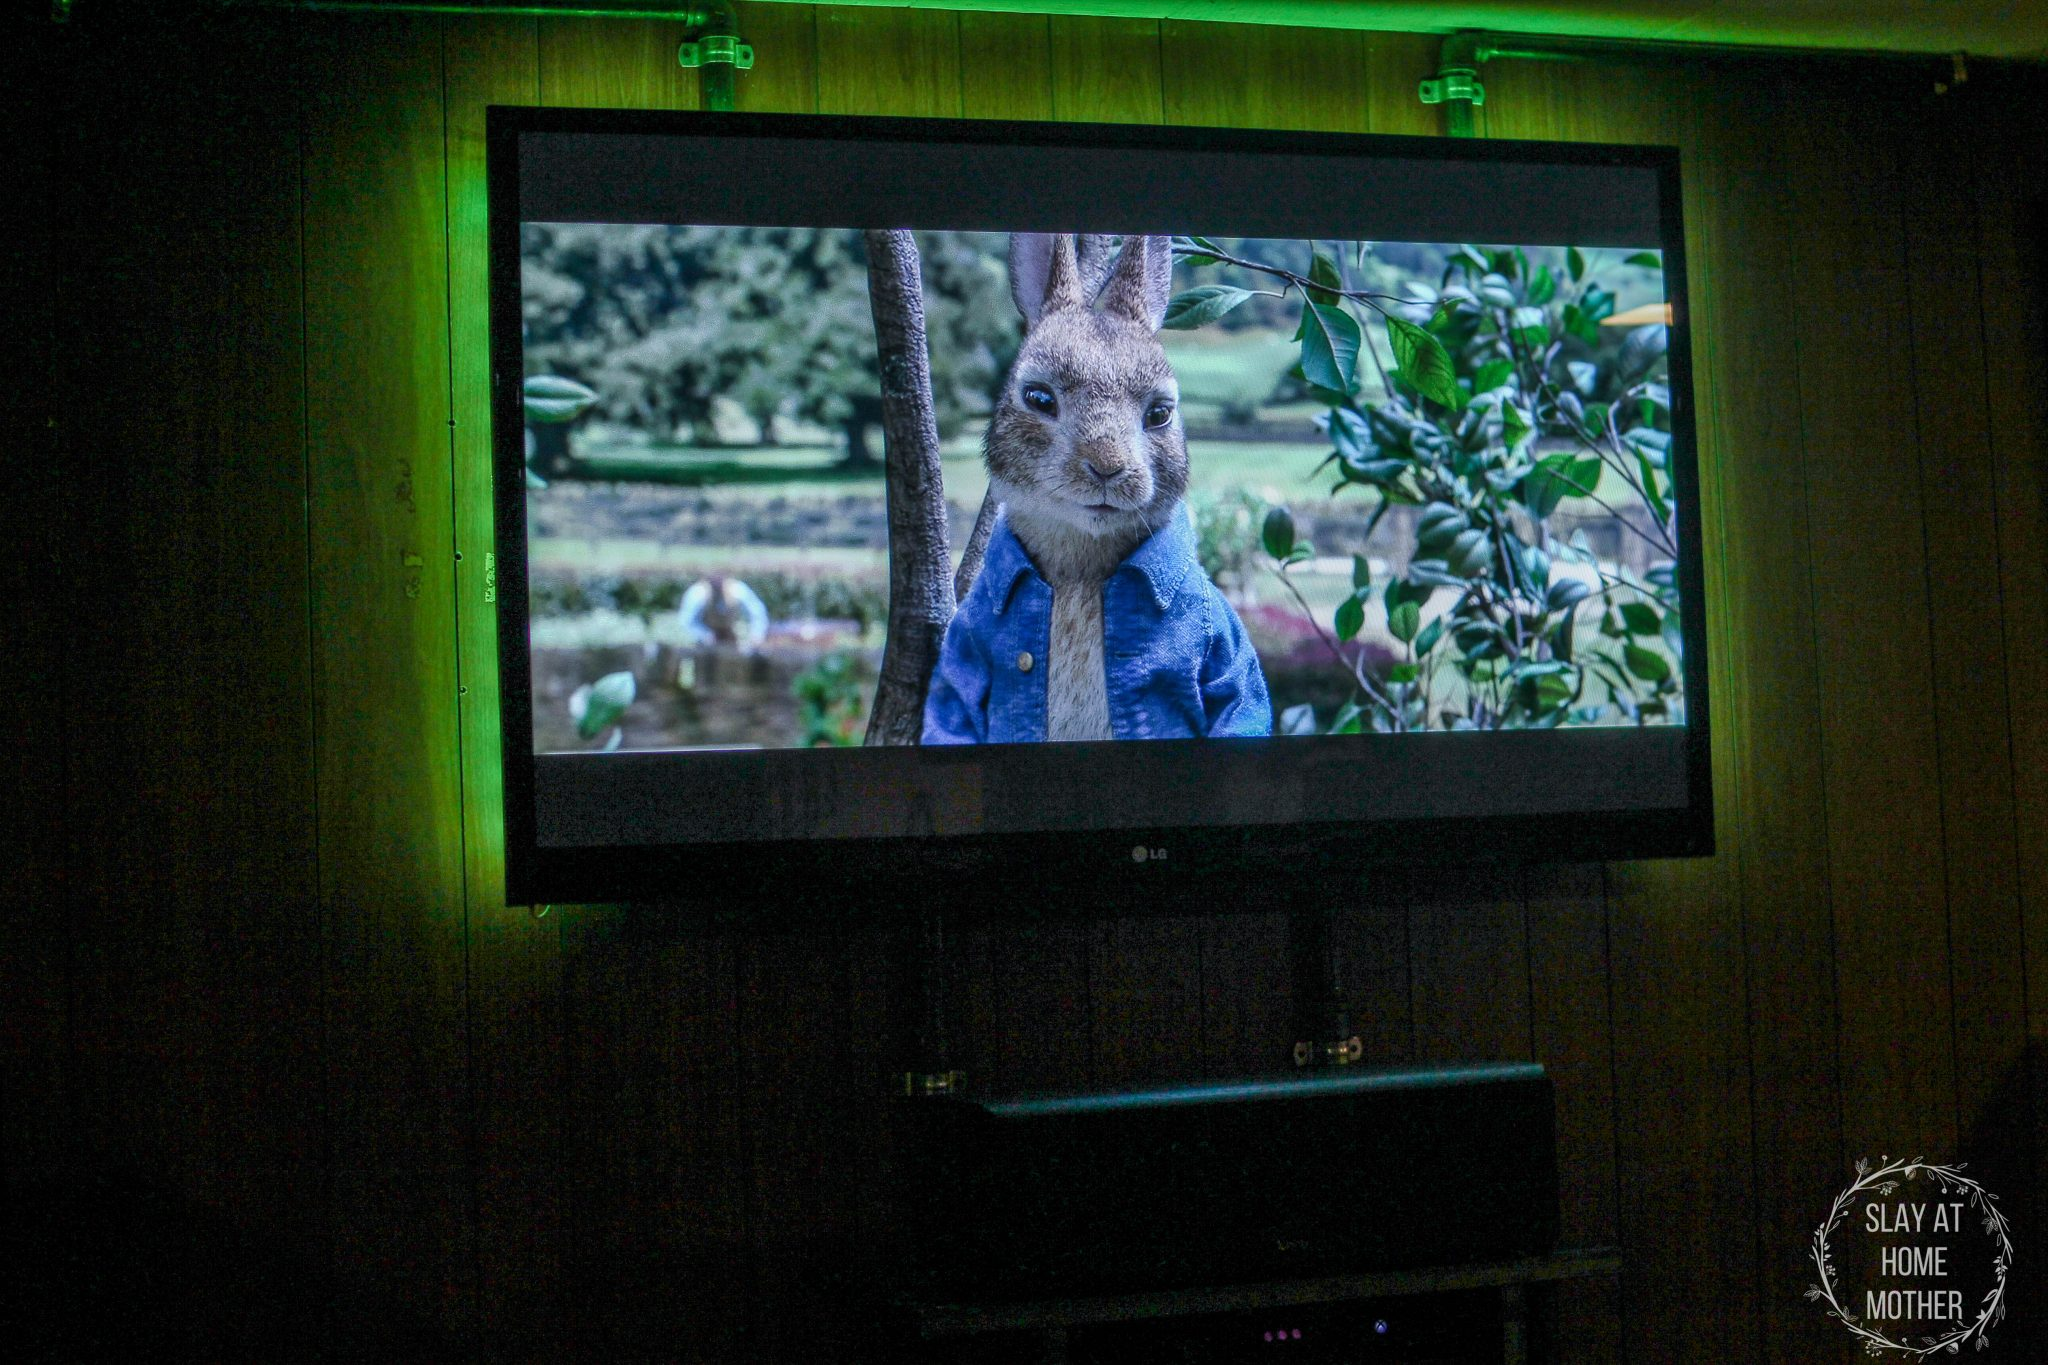 Family Night In According To My 8-Year-Old #welcometofamilynight #peterrabbit - SlayAtHomeMother.com